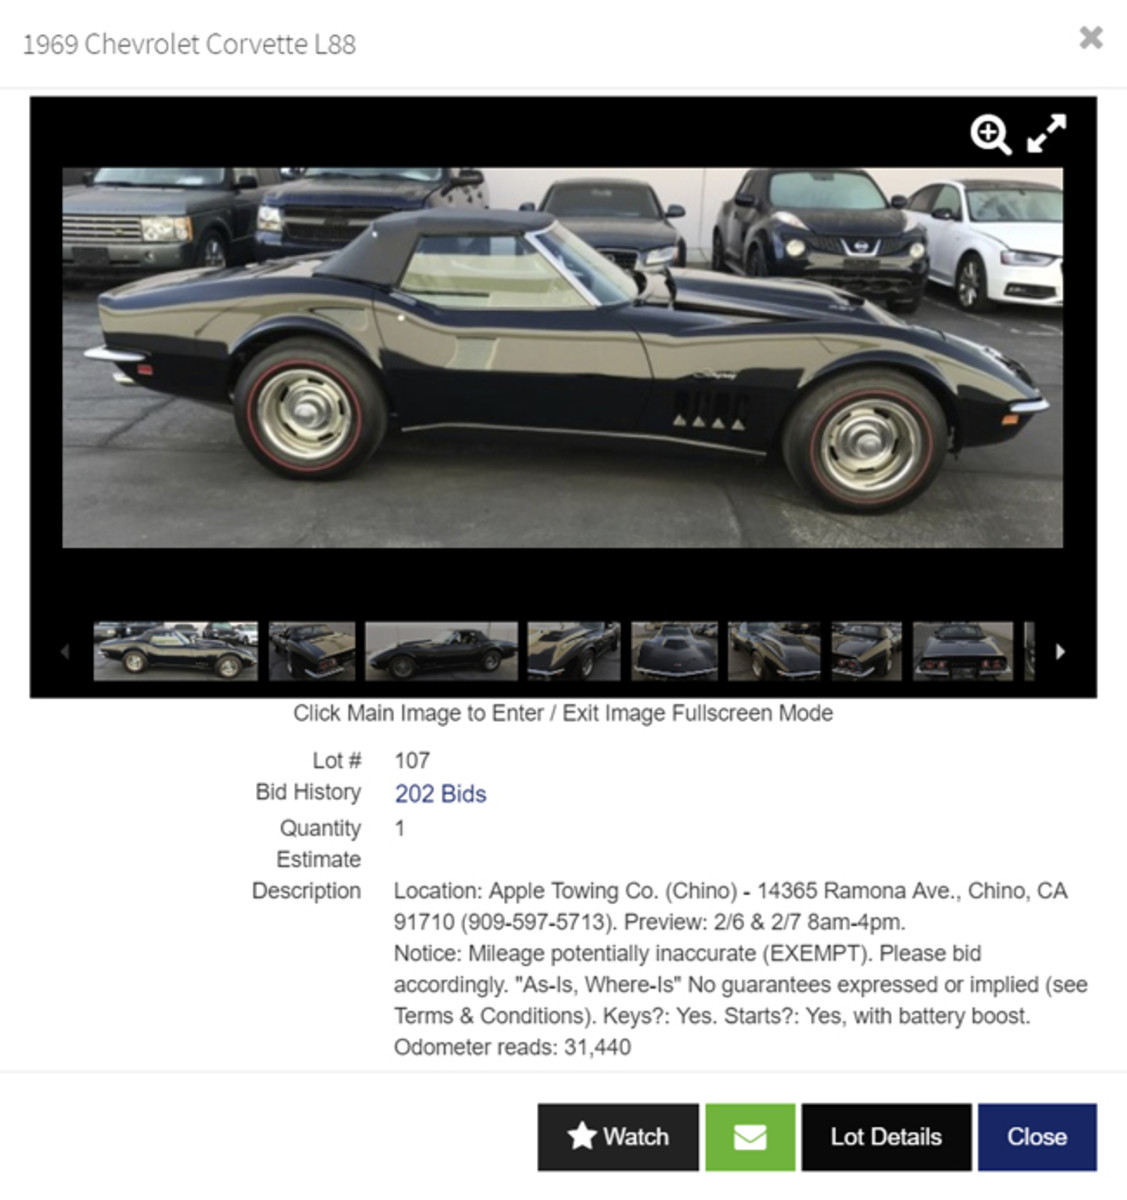 This vintage 1969 Chevrolet Corvette L88 was a treasure we discovered in the Collector / Antique Autos category on HiBid.com. At the time this screenshot was taken, the car had been bid up beyond $230,000 with nearly a week to go.